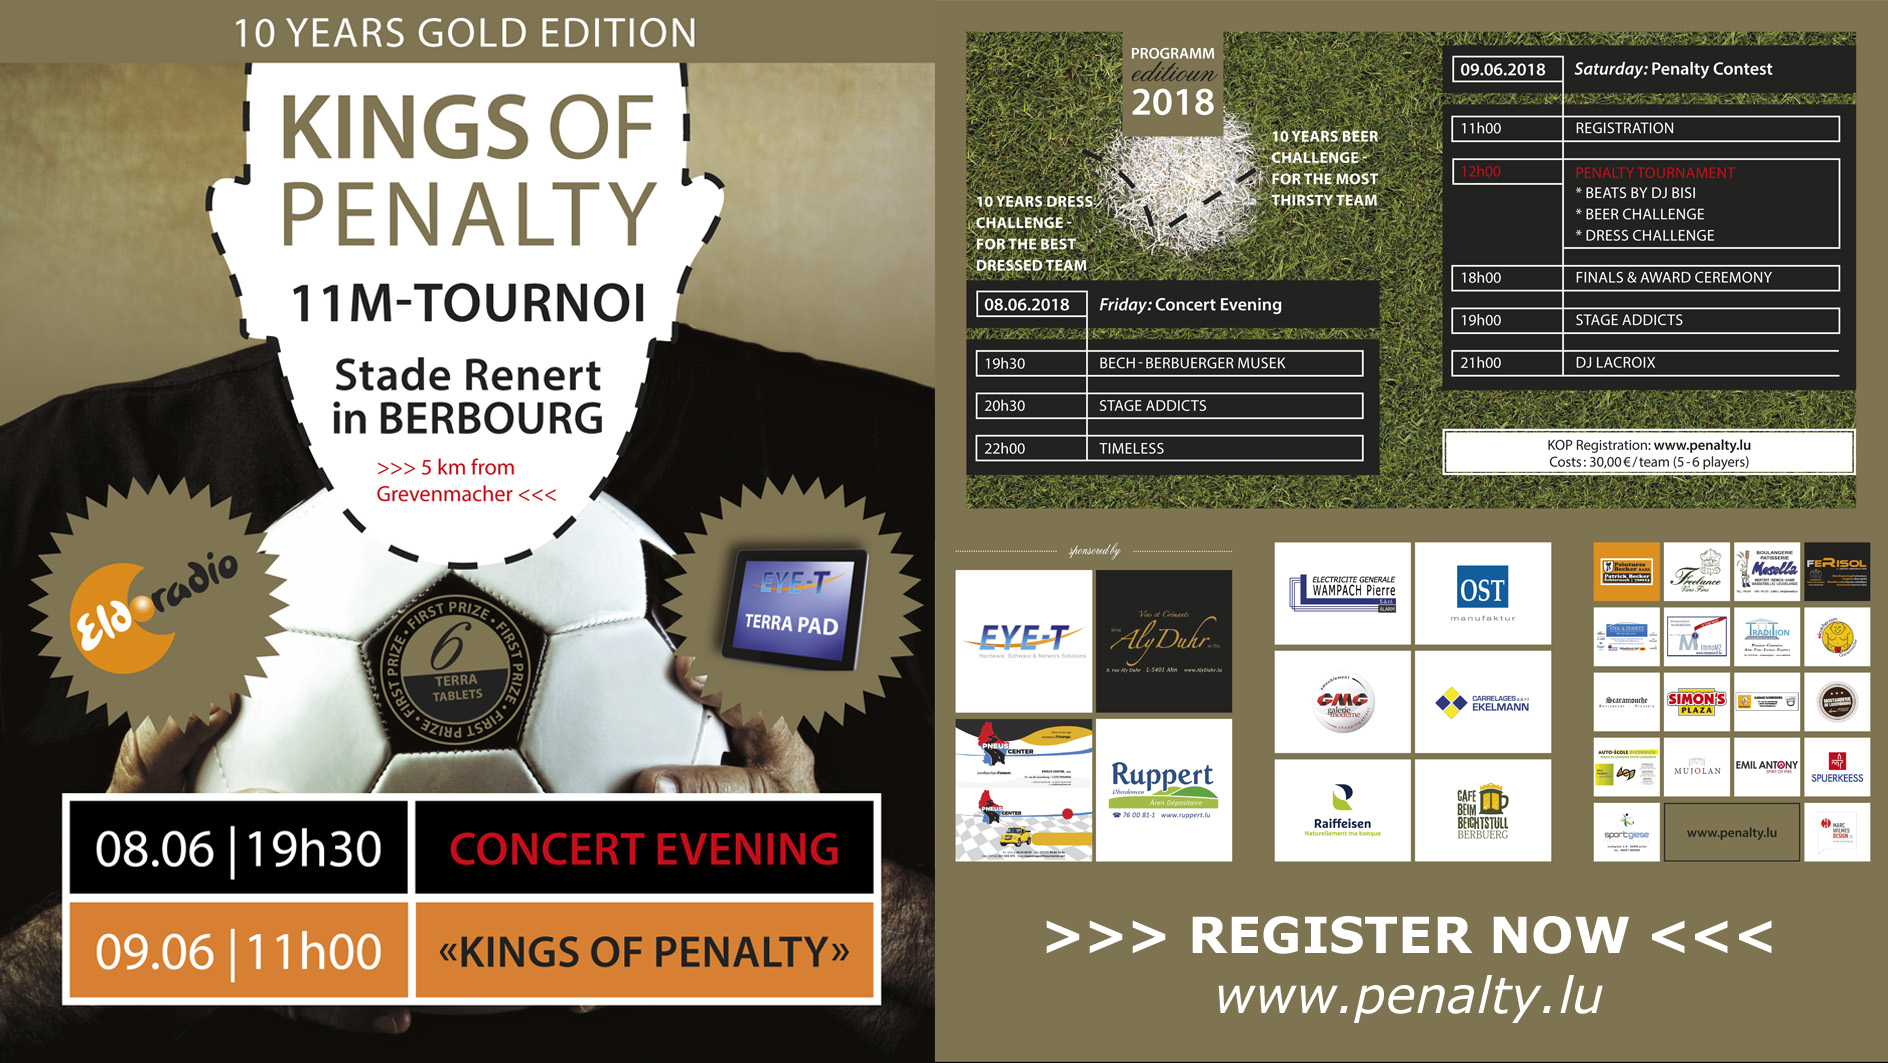 Kings of Penalty 2018: Registrations open now